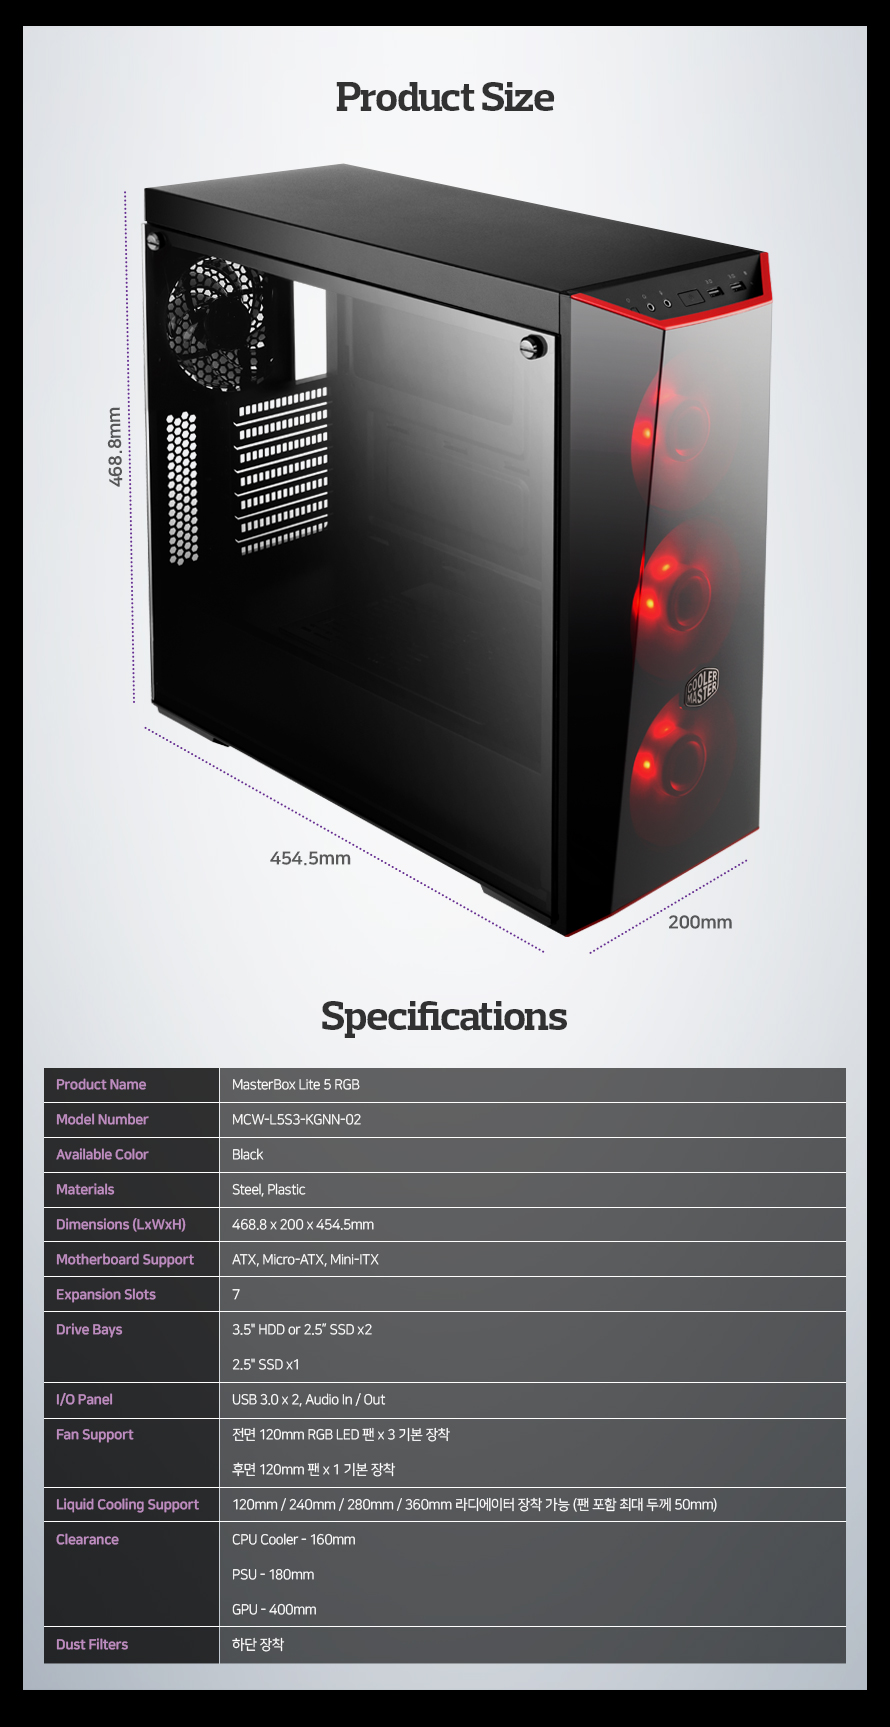 Product Name MasterBox Lite 5 RGBModel Number MCW-L5S3-KGNN-02Available Color BlackMaterials Steel, PlasticDimensions (LxWxH) 468.8 x 200 x 454.5mmMotherboard Support ATX, Micro-ATX, Mini-ITXExpansion Slots 7Drive Bays 3.5인치 HDD or 2.5인치 SSD x2 2.5인치 SSD x1I/O Panel USB 3.0 x 2, Audio In / OutFan Support 전면 120mm RGB LED 팬 x 3 기본 장착 후면 120mm 팬 x 1 기본 장착 120mm / 240mm / 280mm / 360mm 라디에이터 장착 가능 (팬 포함 최대 두께 50mm)Liquid Cooling Support CPU Cooler - 160mmClearance PSU - 180mm GPU - 400mmDust Filters 하단 장착